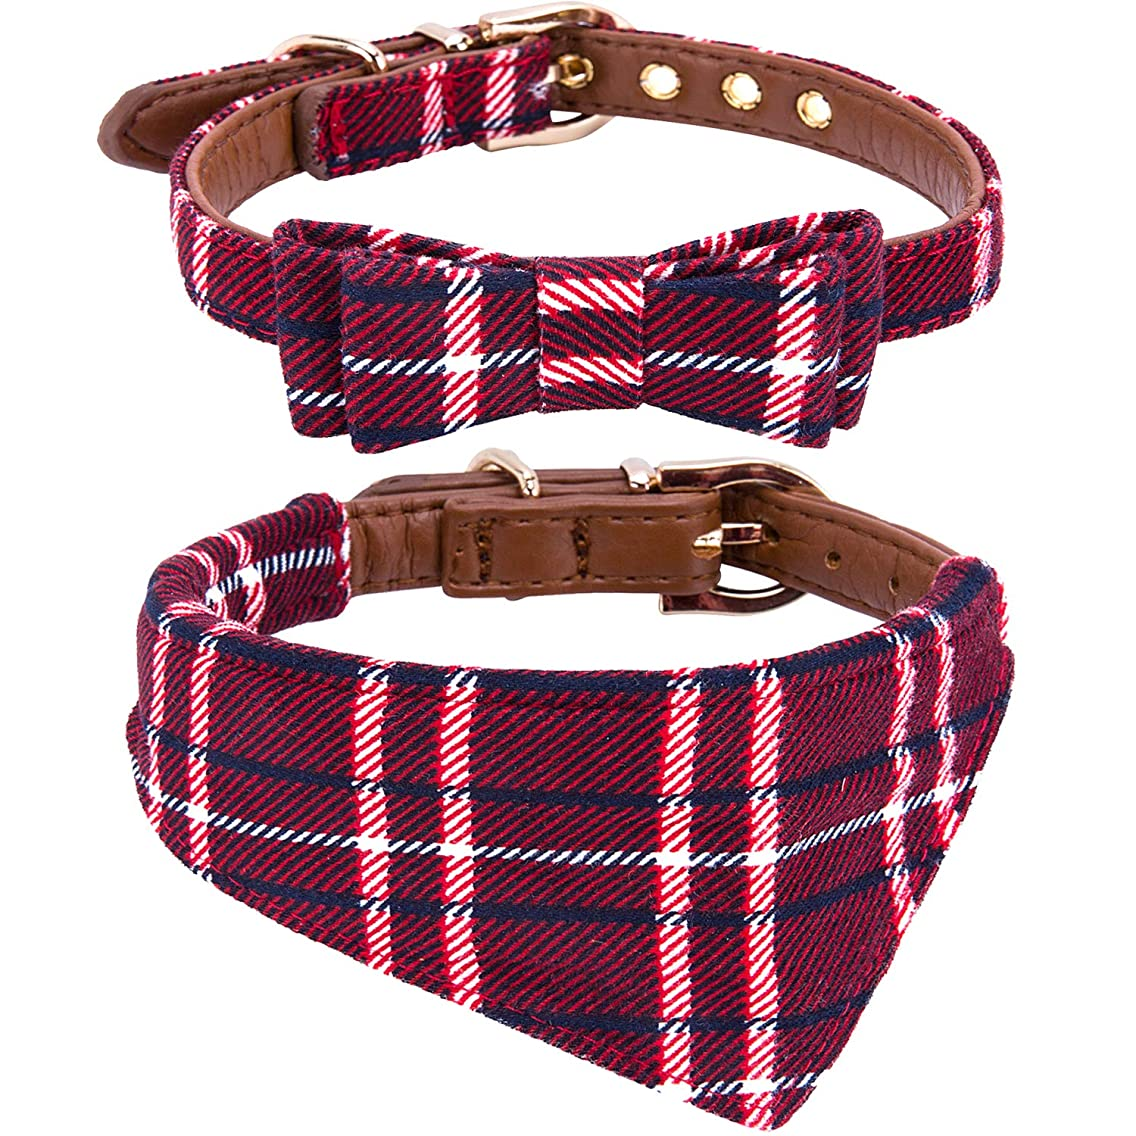 Adjustable Collar for Small & Medium Dogs. Cute Unique Plaid of Durable Polyester Fabric Blend. for Male and Female from StawberryEC